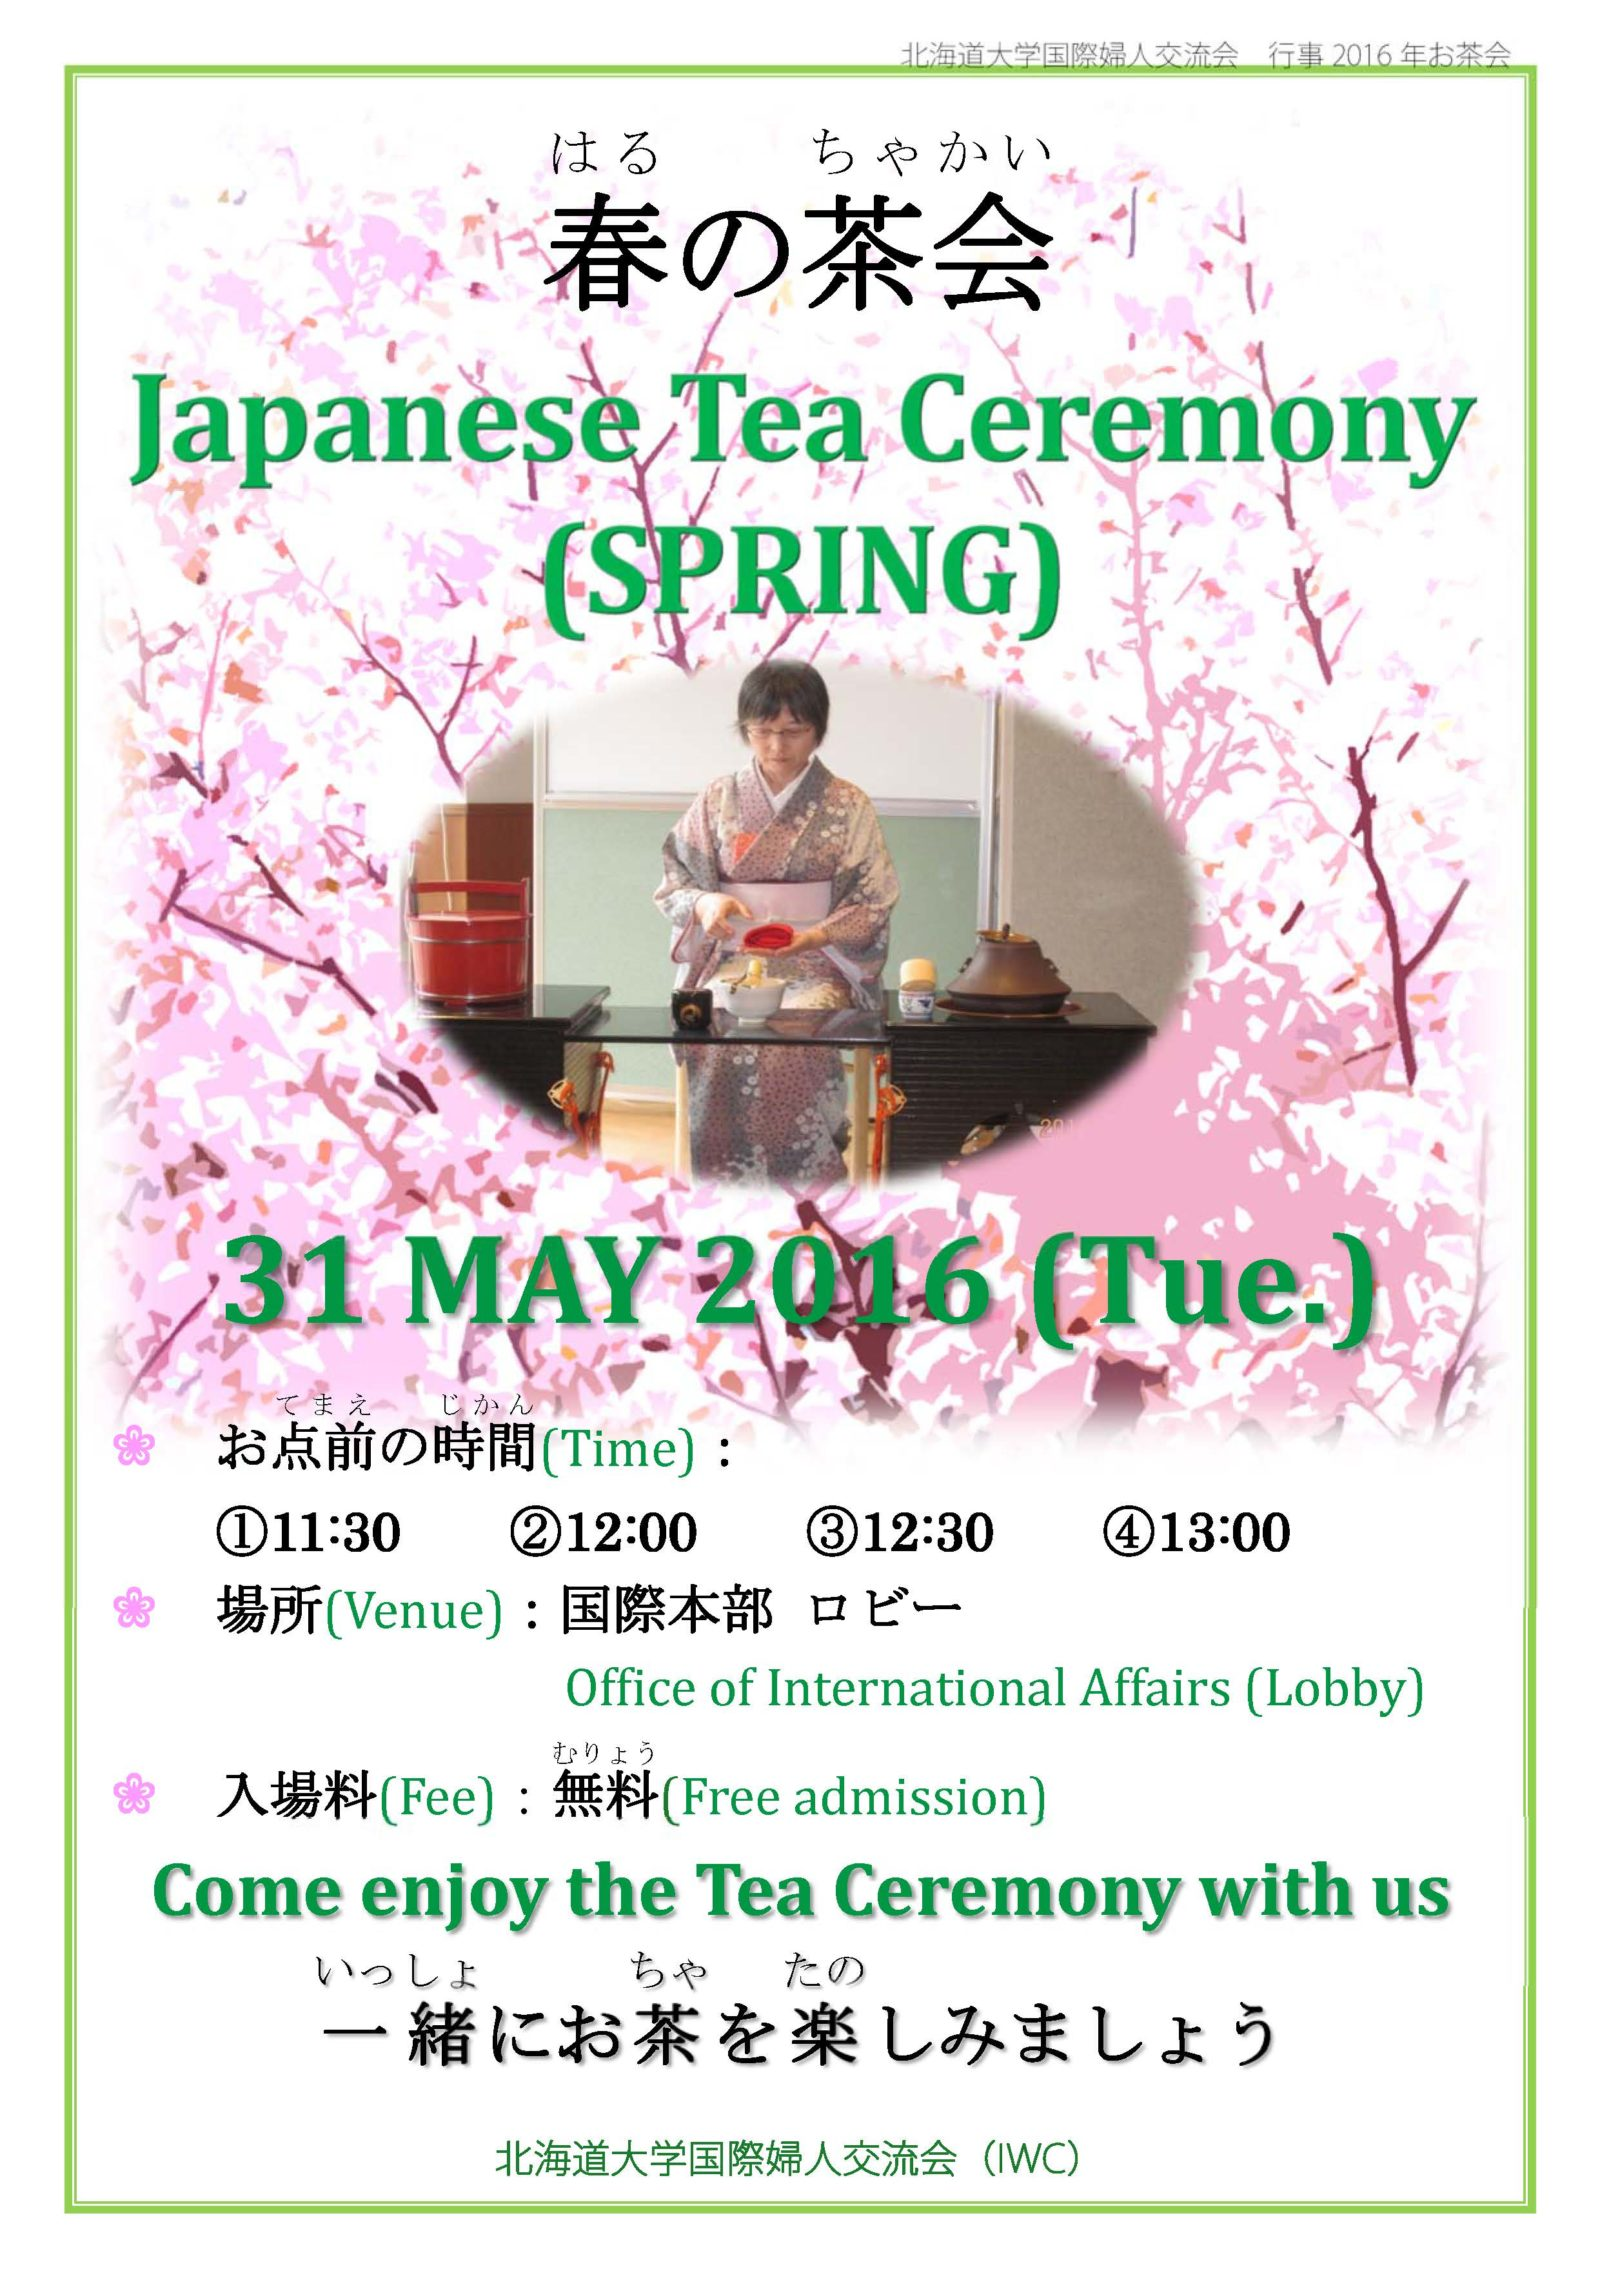 Tea-Ceremony on 31 May, 2016